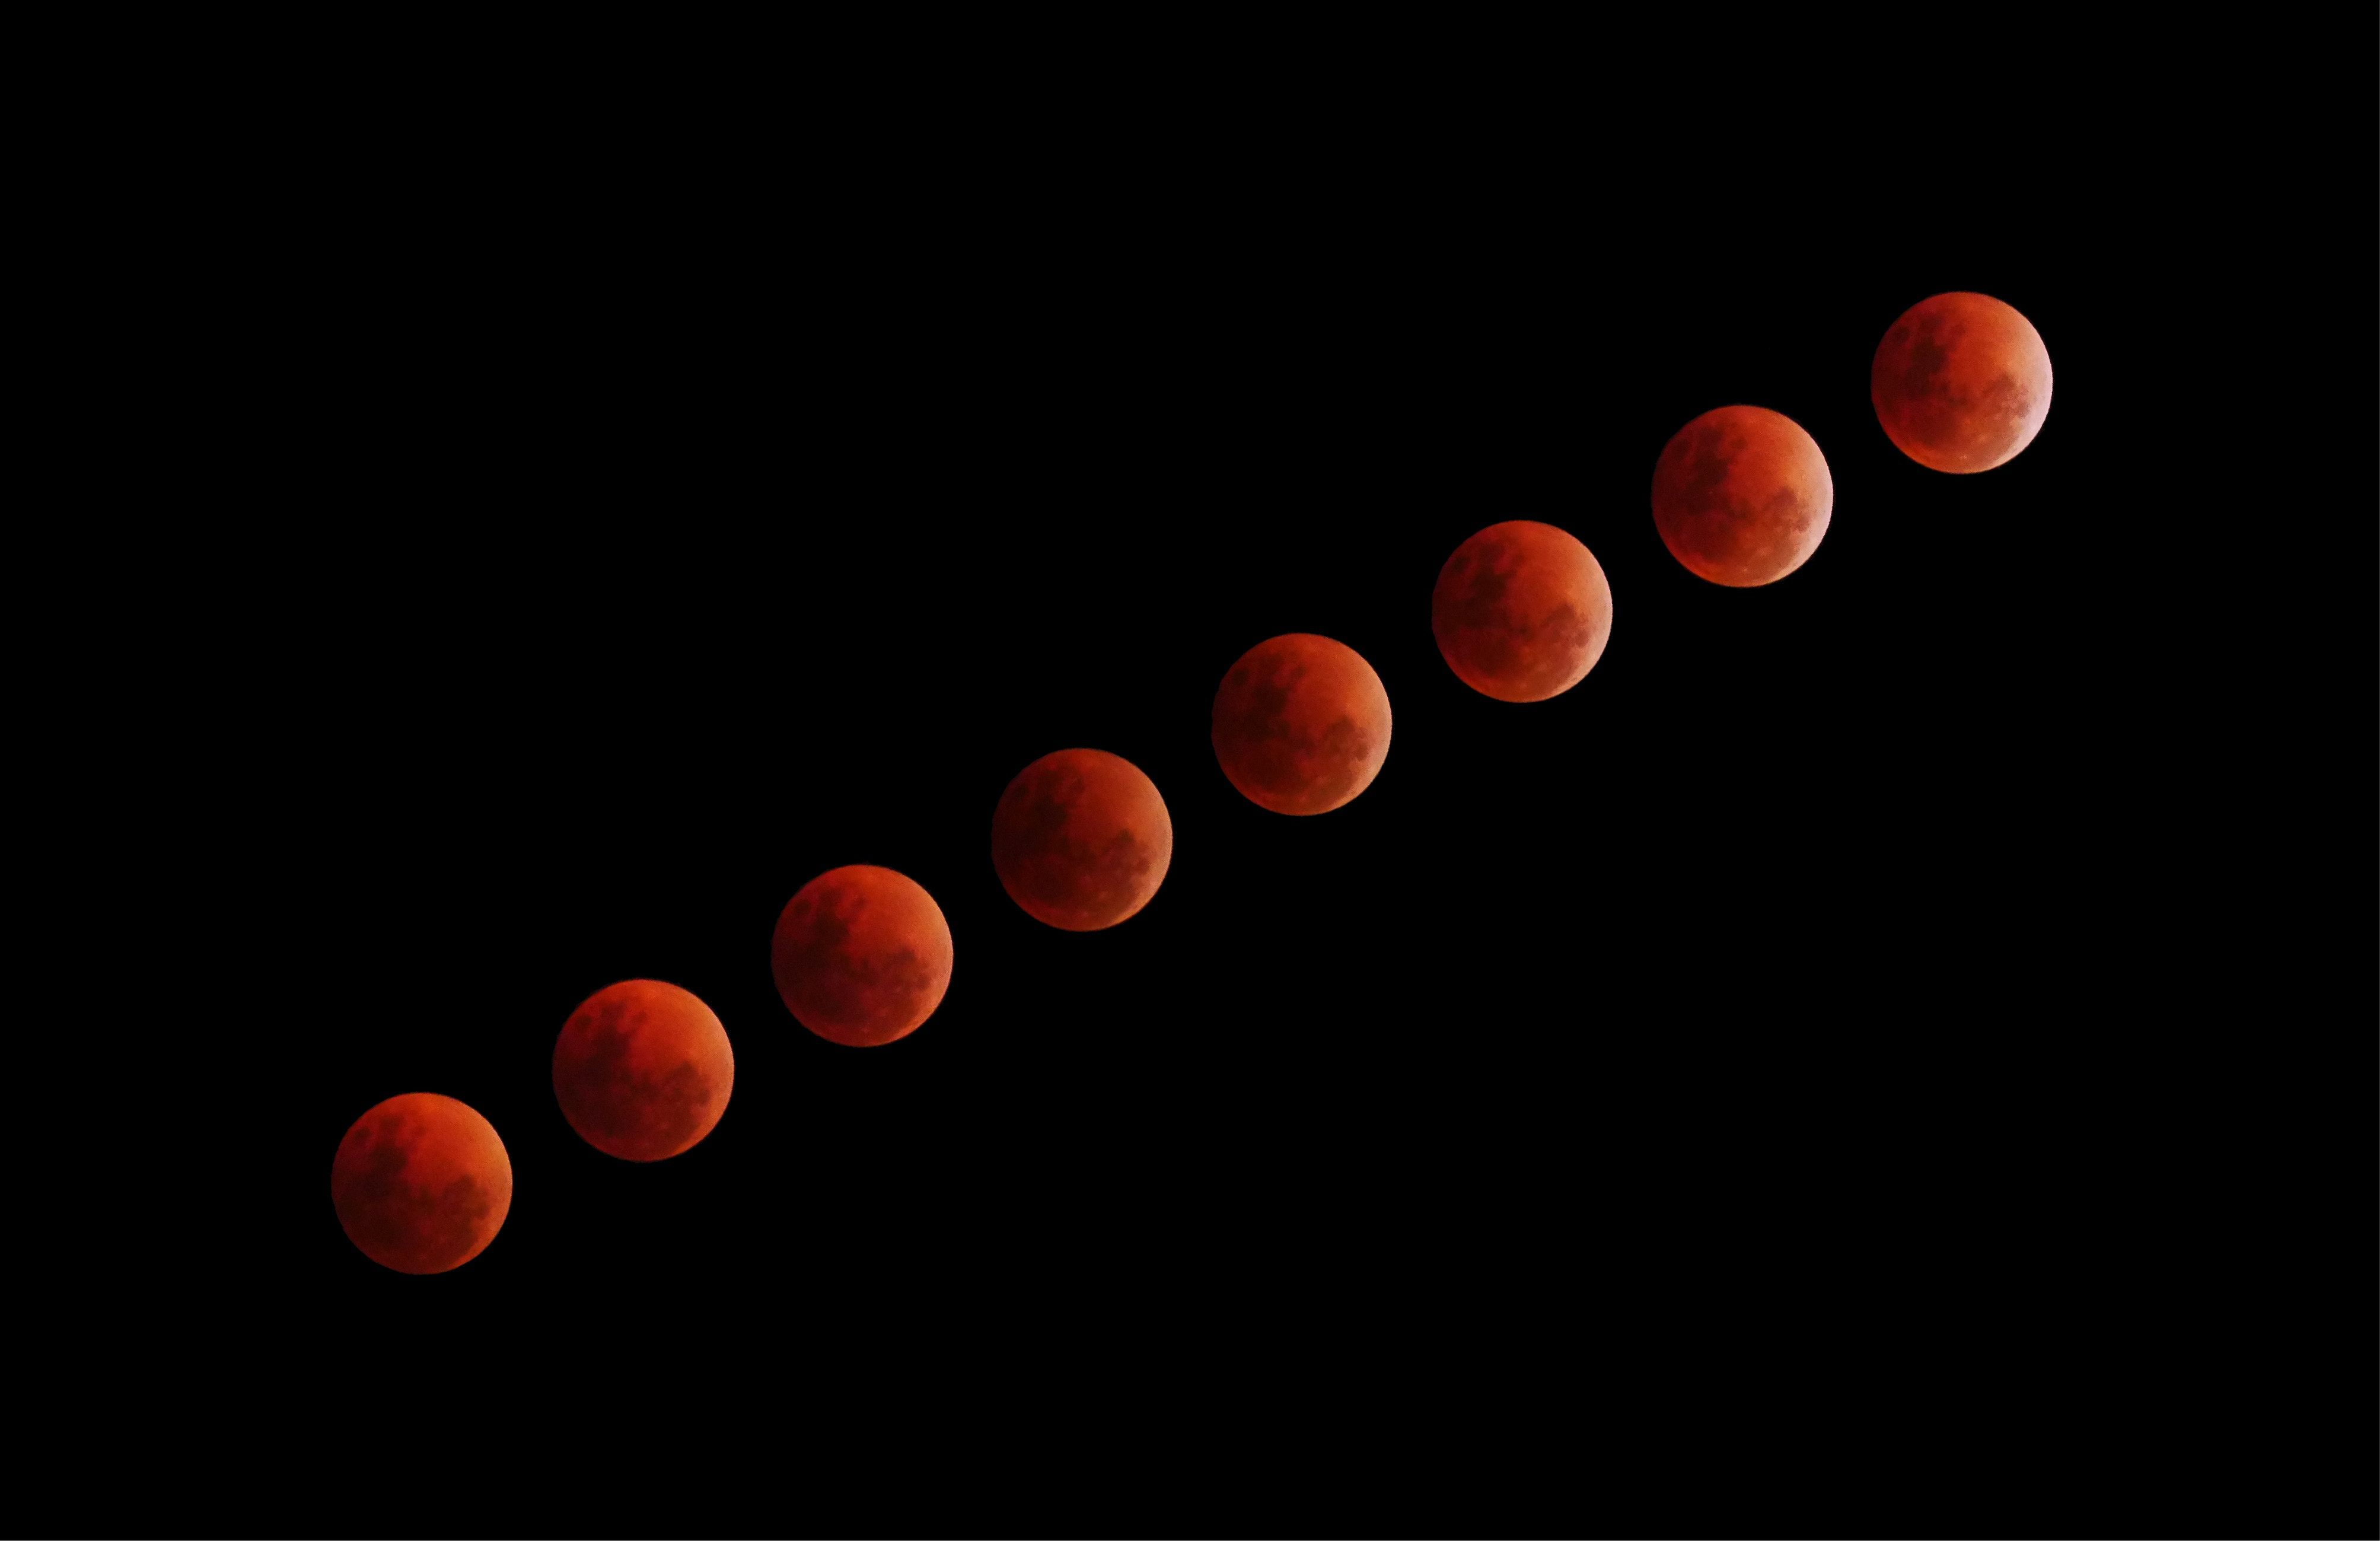 Try using a long lens when capturing a lunar eclipse